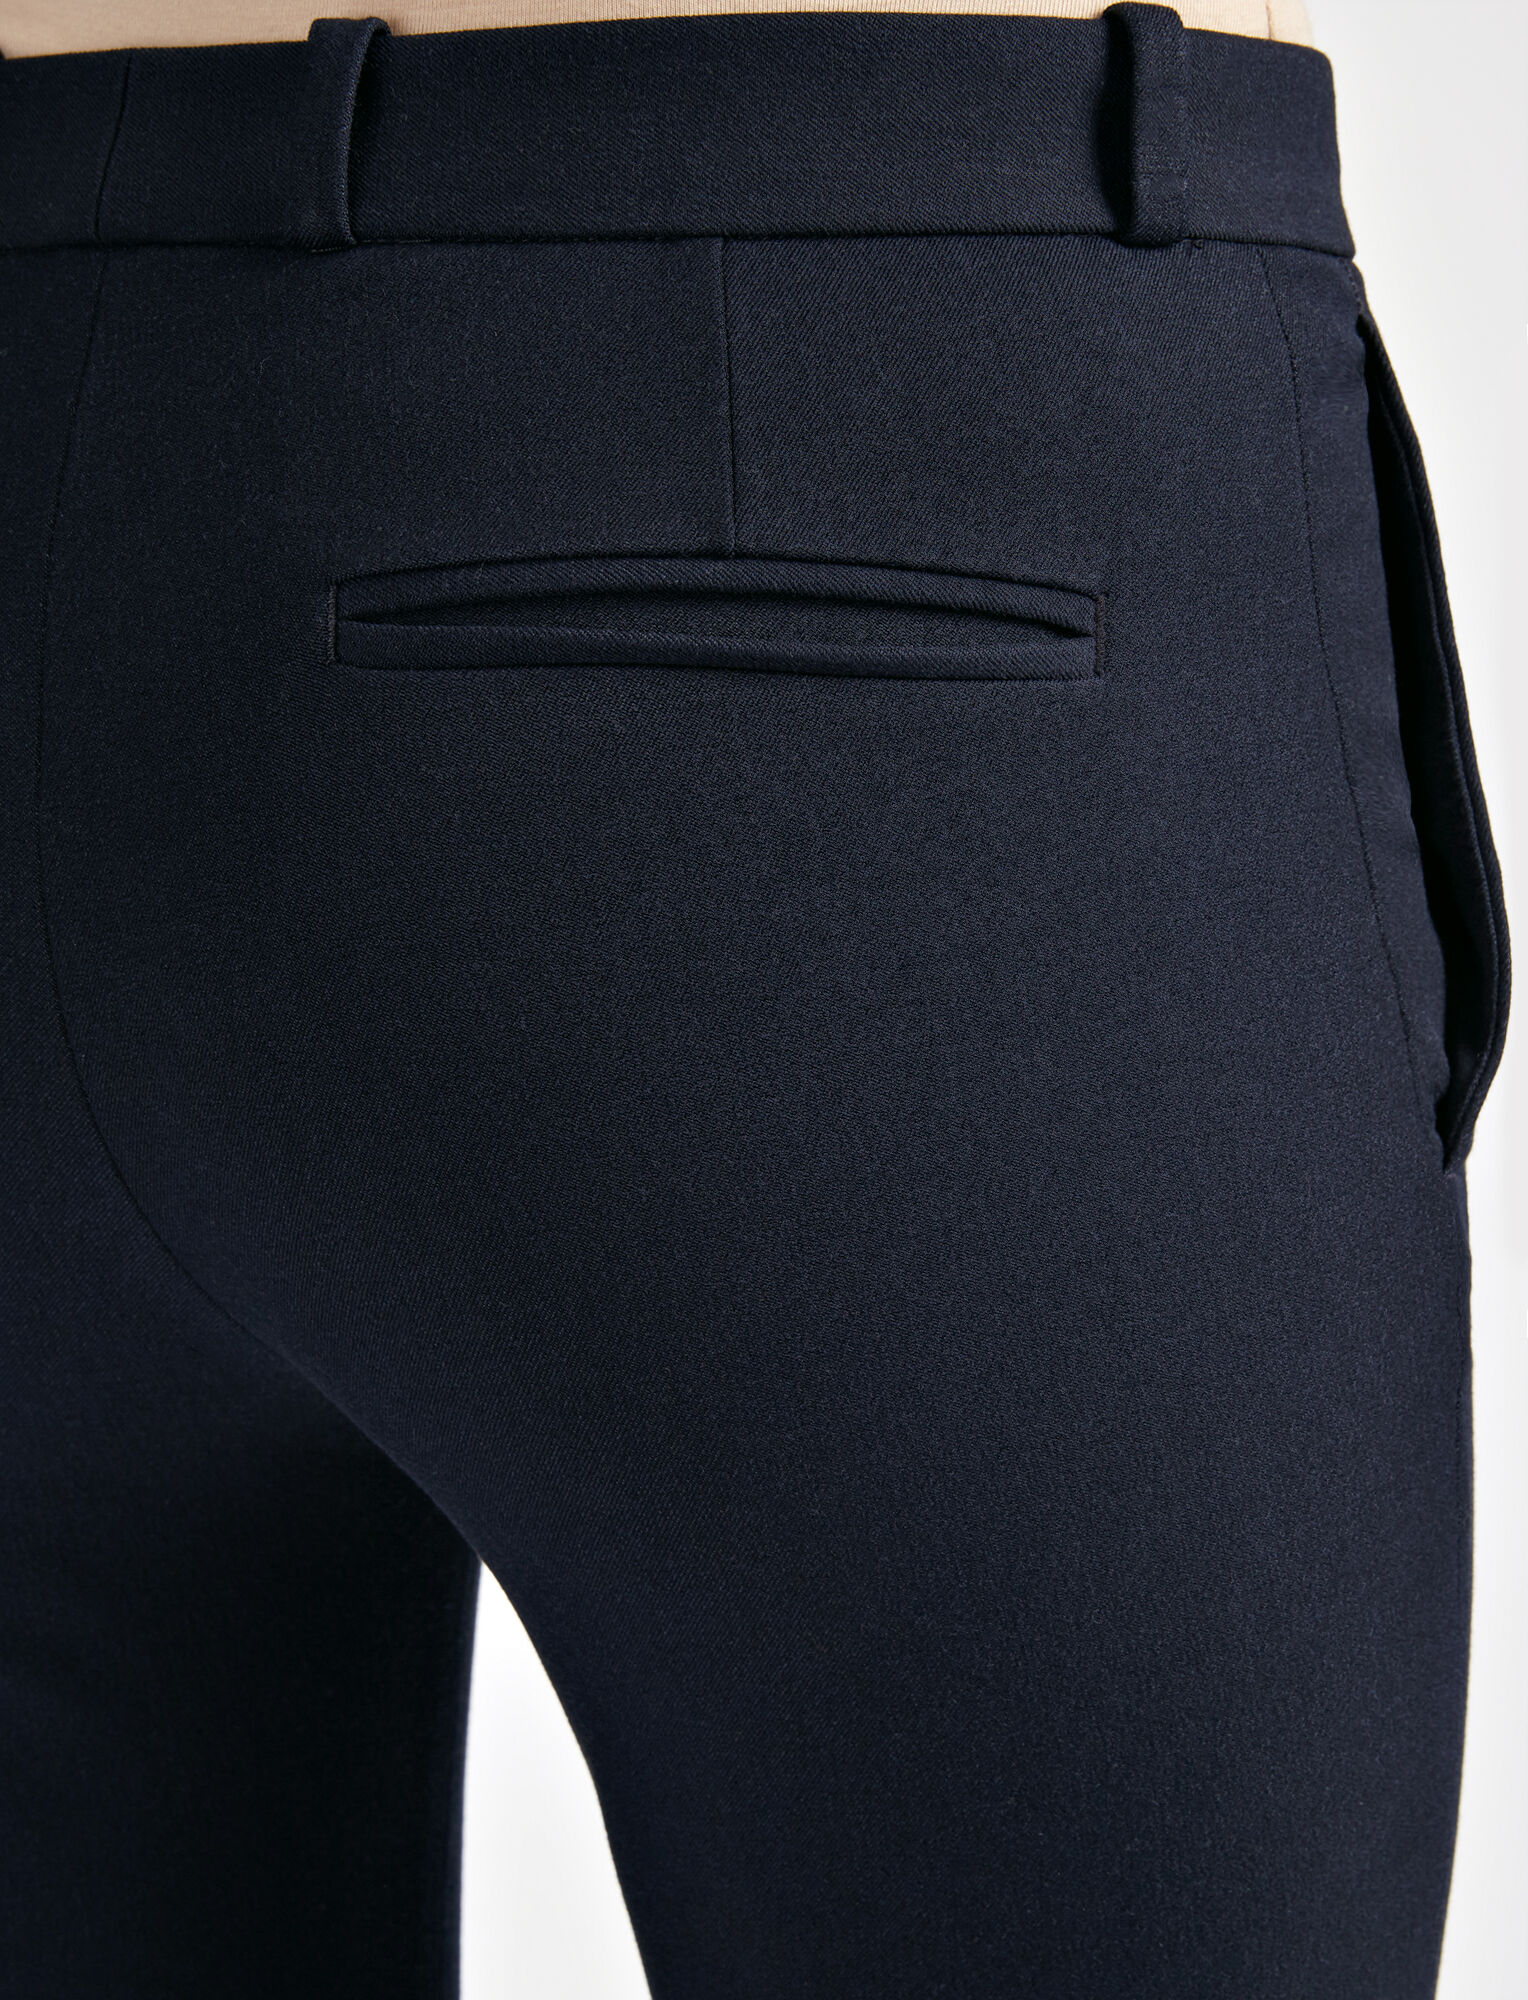 Joseph, Pantalon New Rocket en gabardine stretch, in NAVY